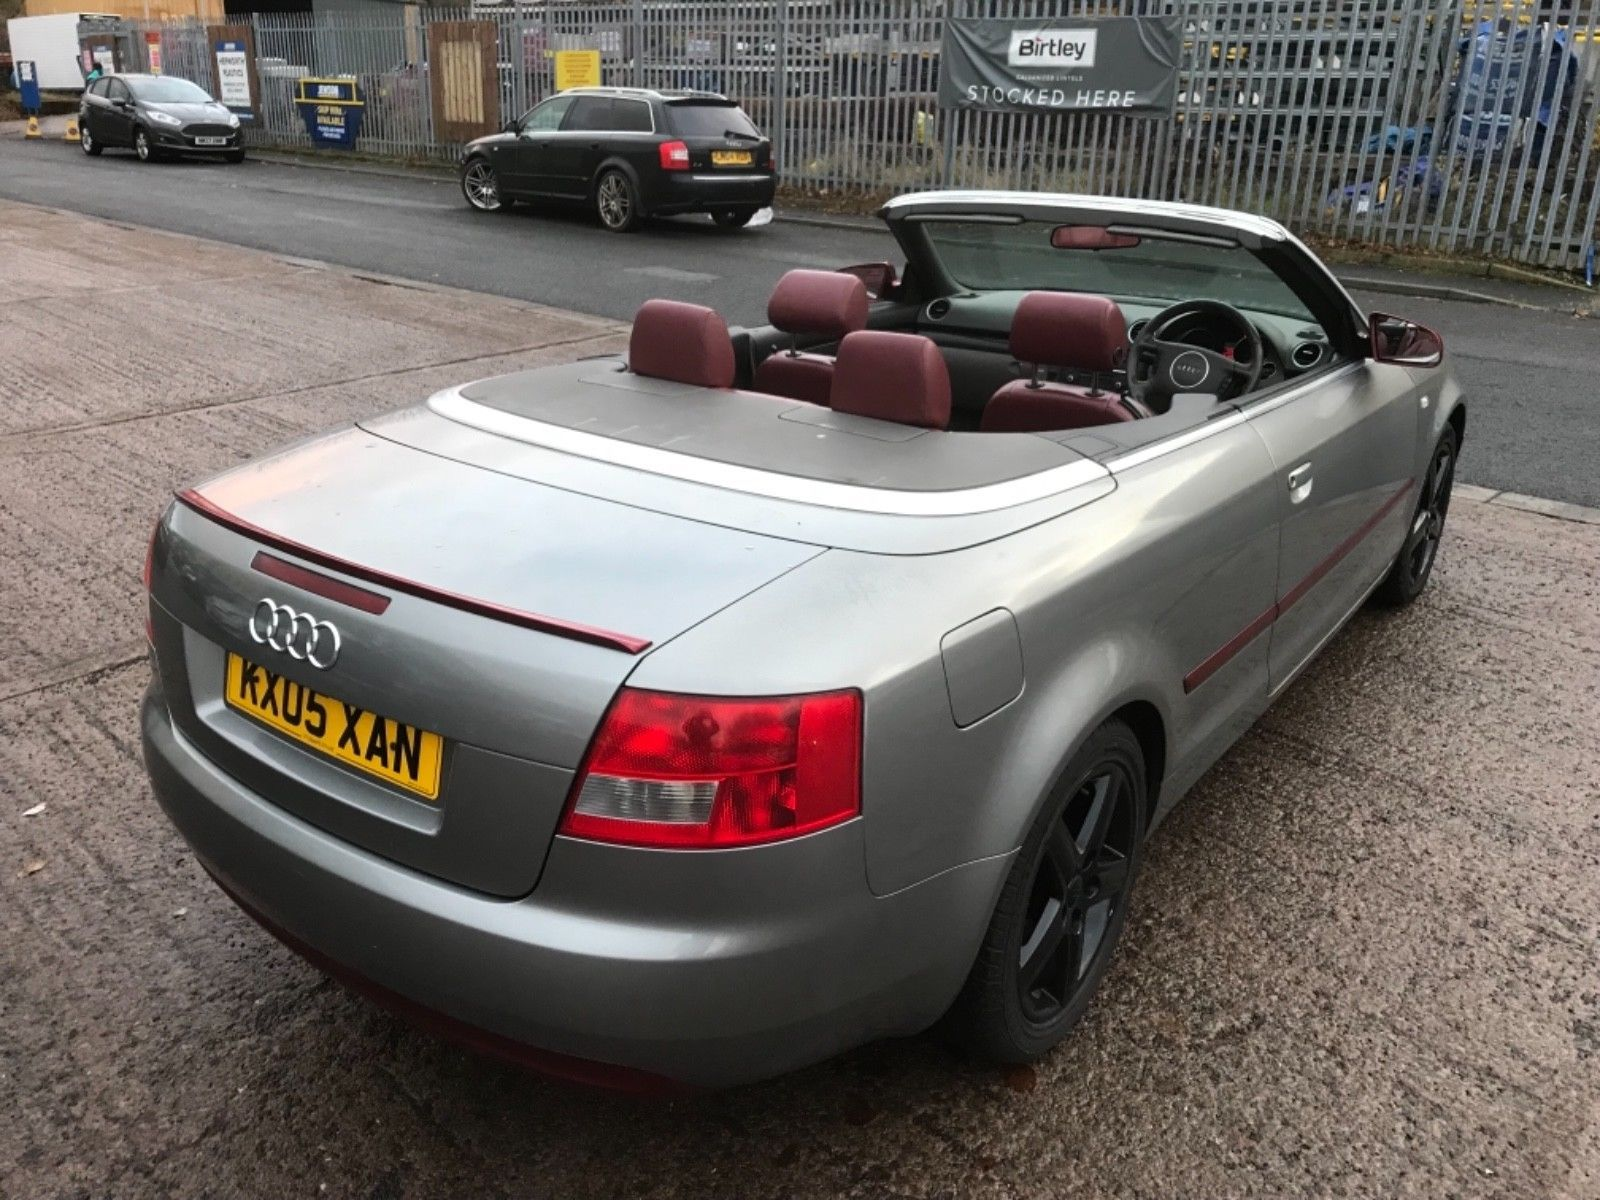 2005 Audi A4 2 5tdi Automatic Cabriolet Convertible Long Mot 1 995 00 End Date Monday Mar 5 2018 19 32 11 Gmt Add To Watch List